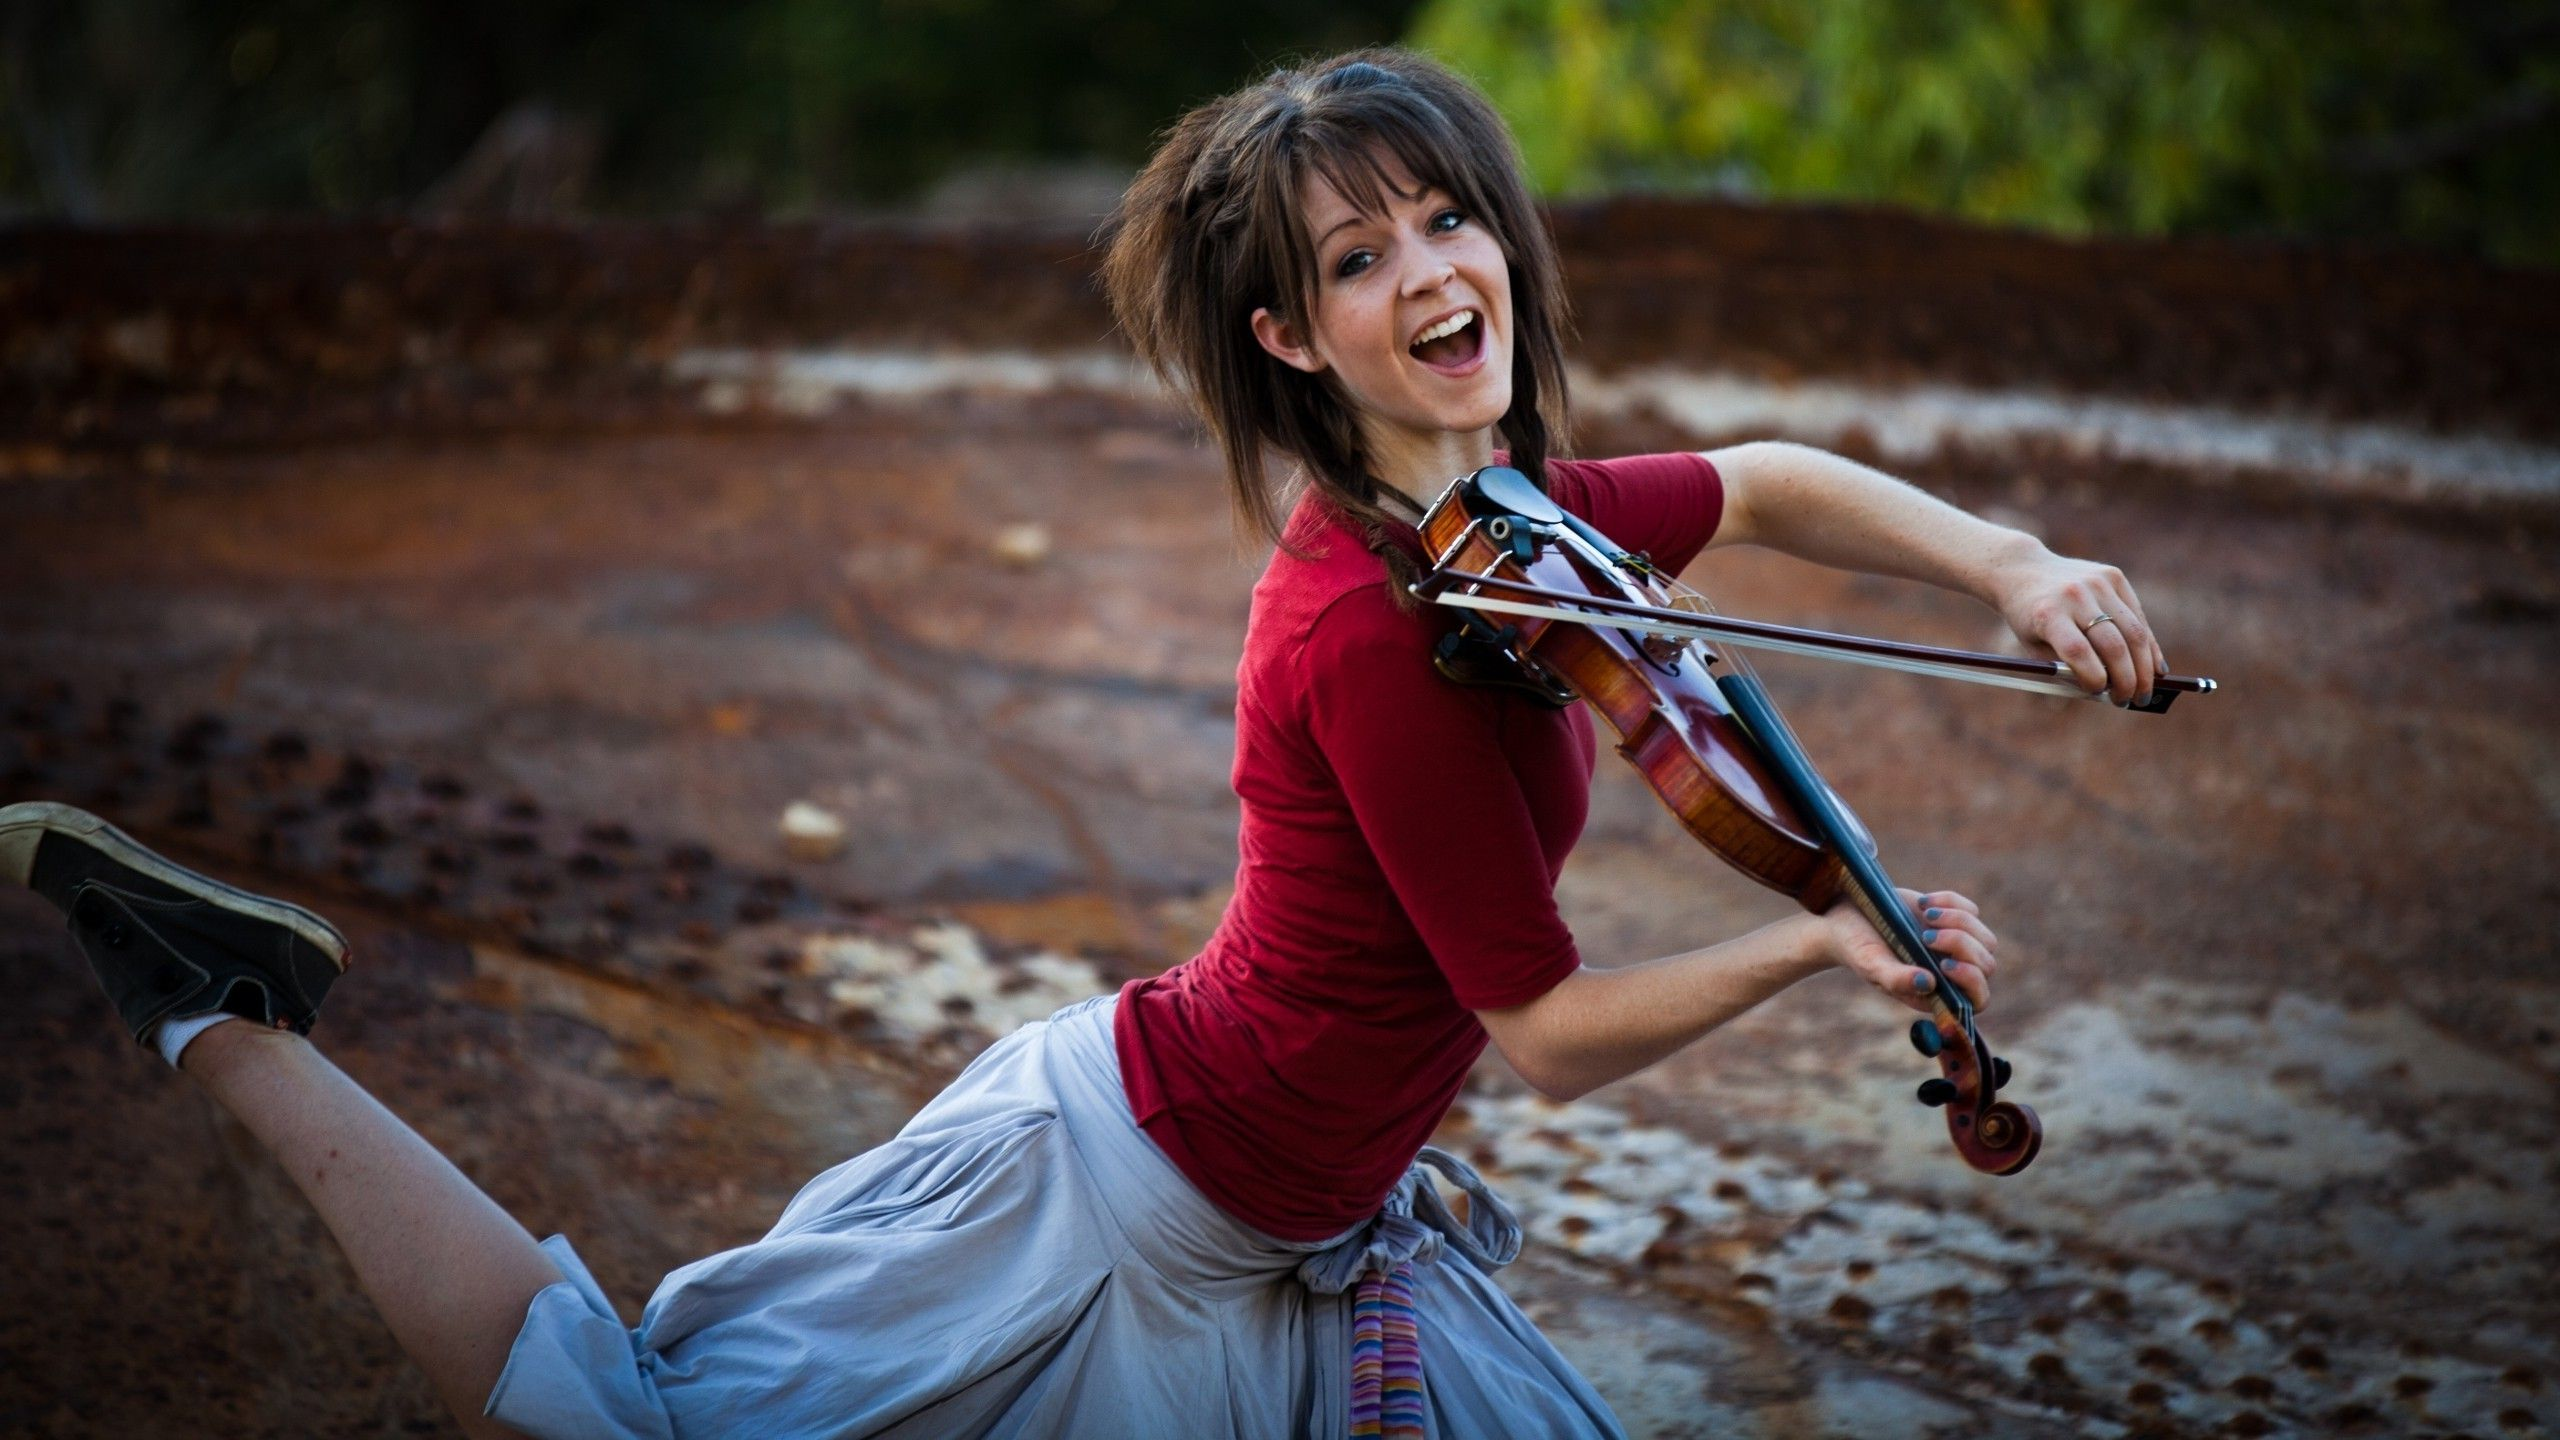 Title: An Evening with Dancing Violinist Lindsey Stirling